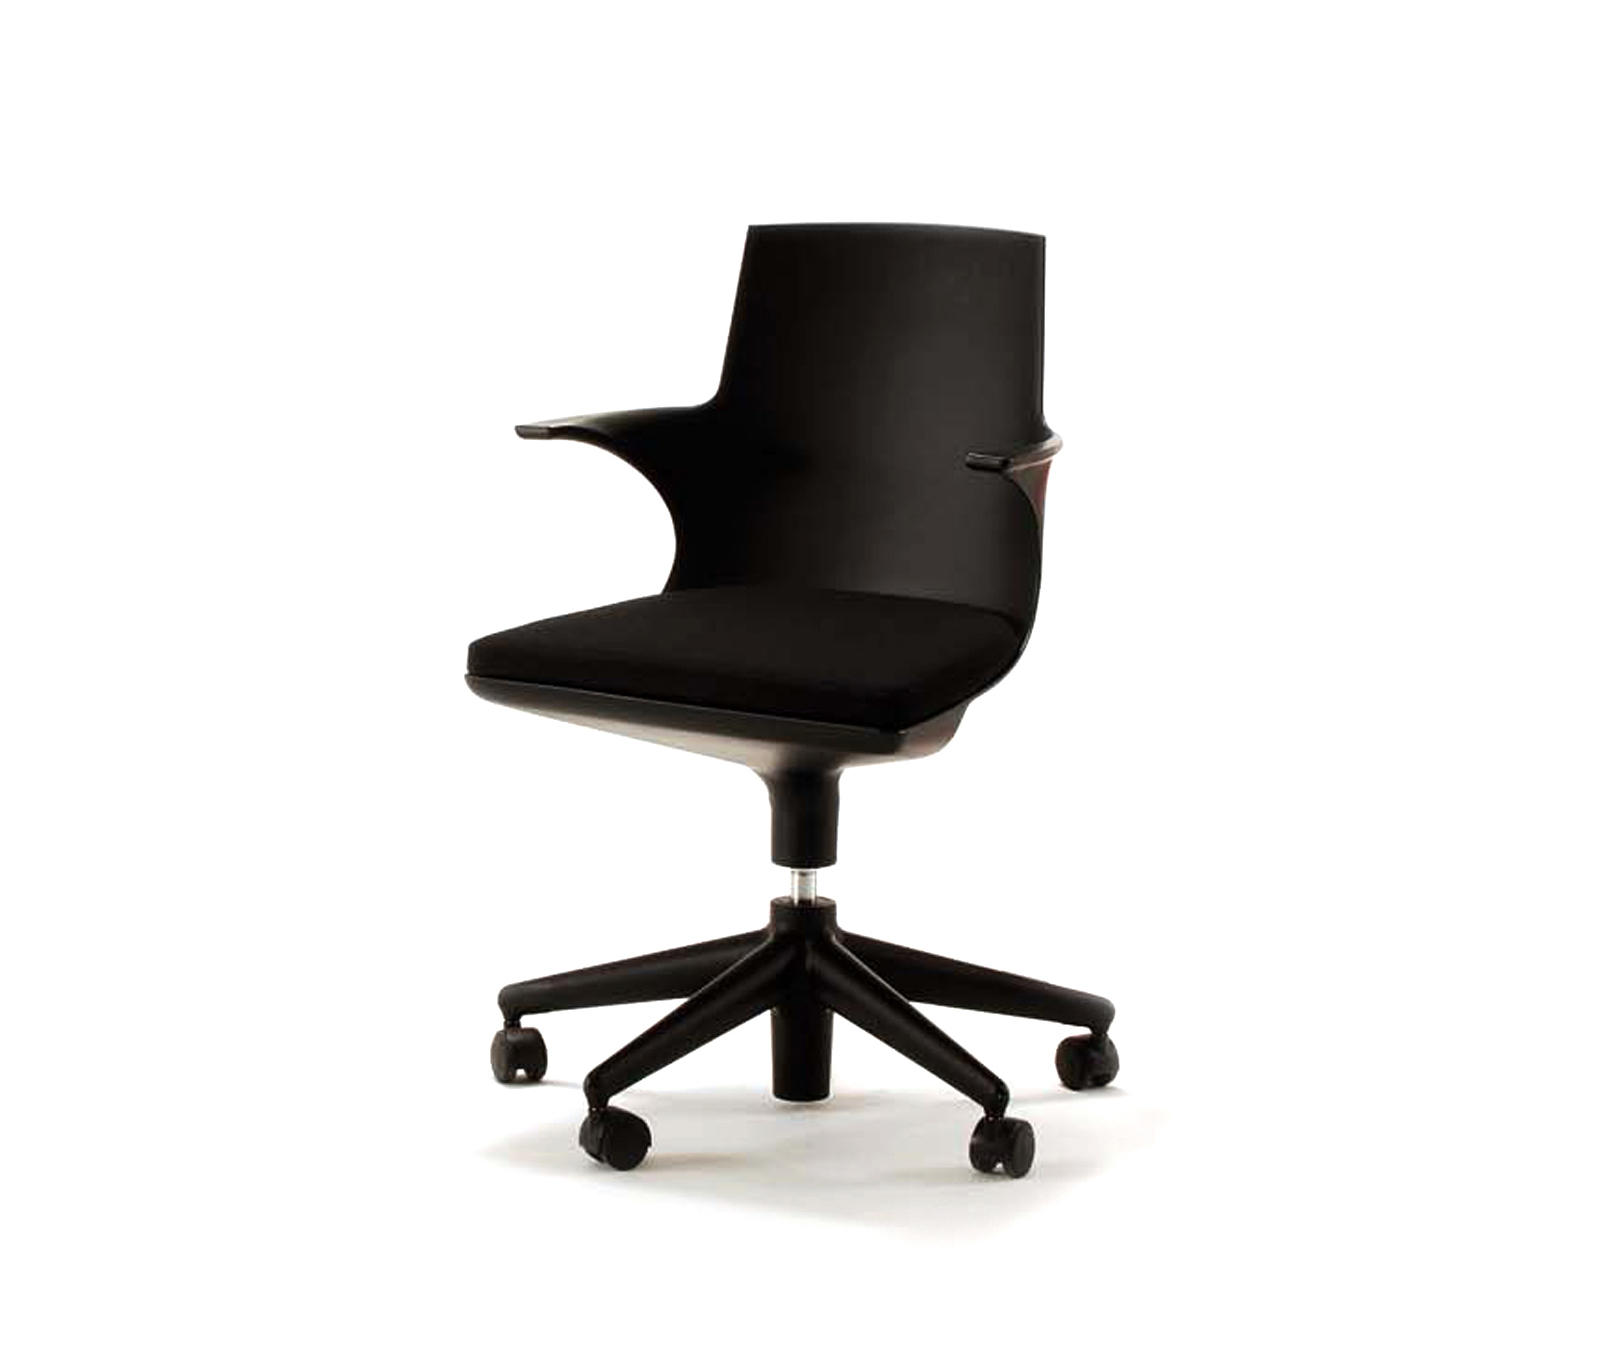 spoon chair  task chairs from kartell  architonic -  spoon chair by kartell  task chairs